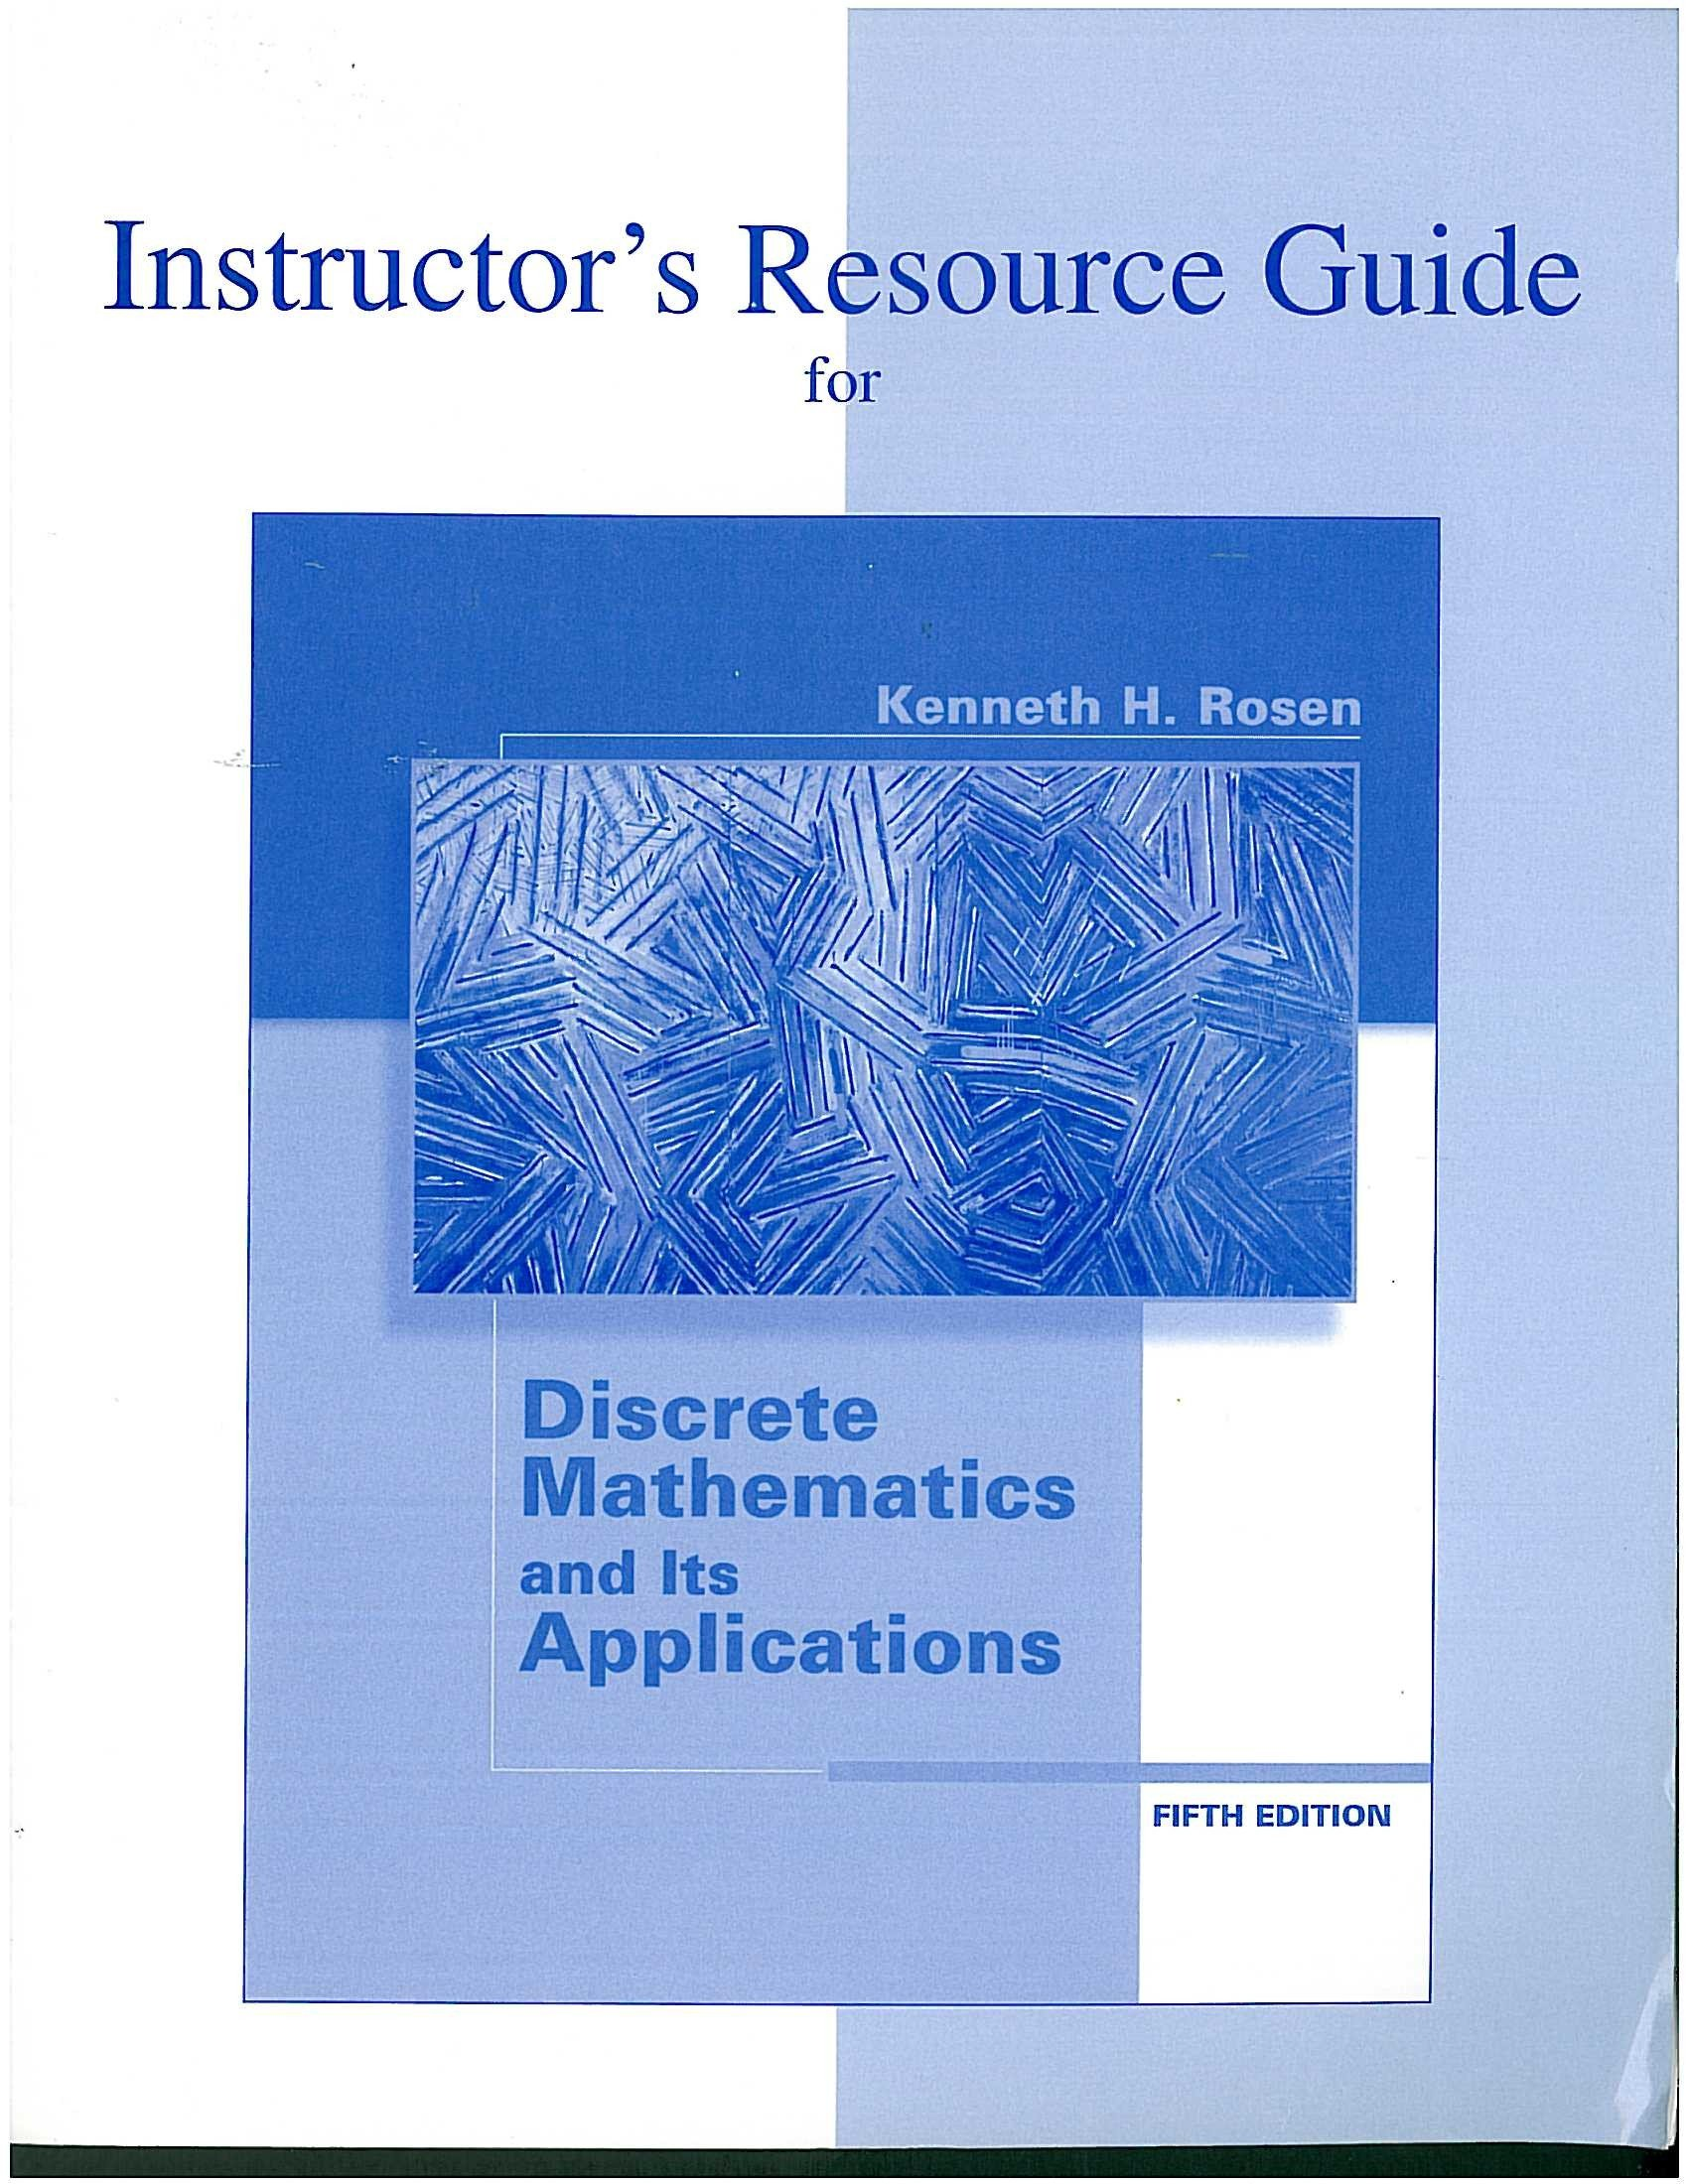 Discrete Mathematics and Its Applications Instructor Resource Guide:  Kenneth H. Rosen: 9780072474800: Amazon.com: Books